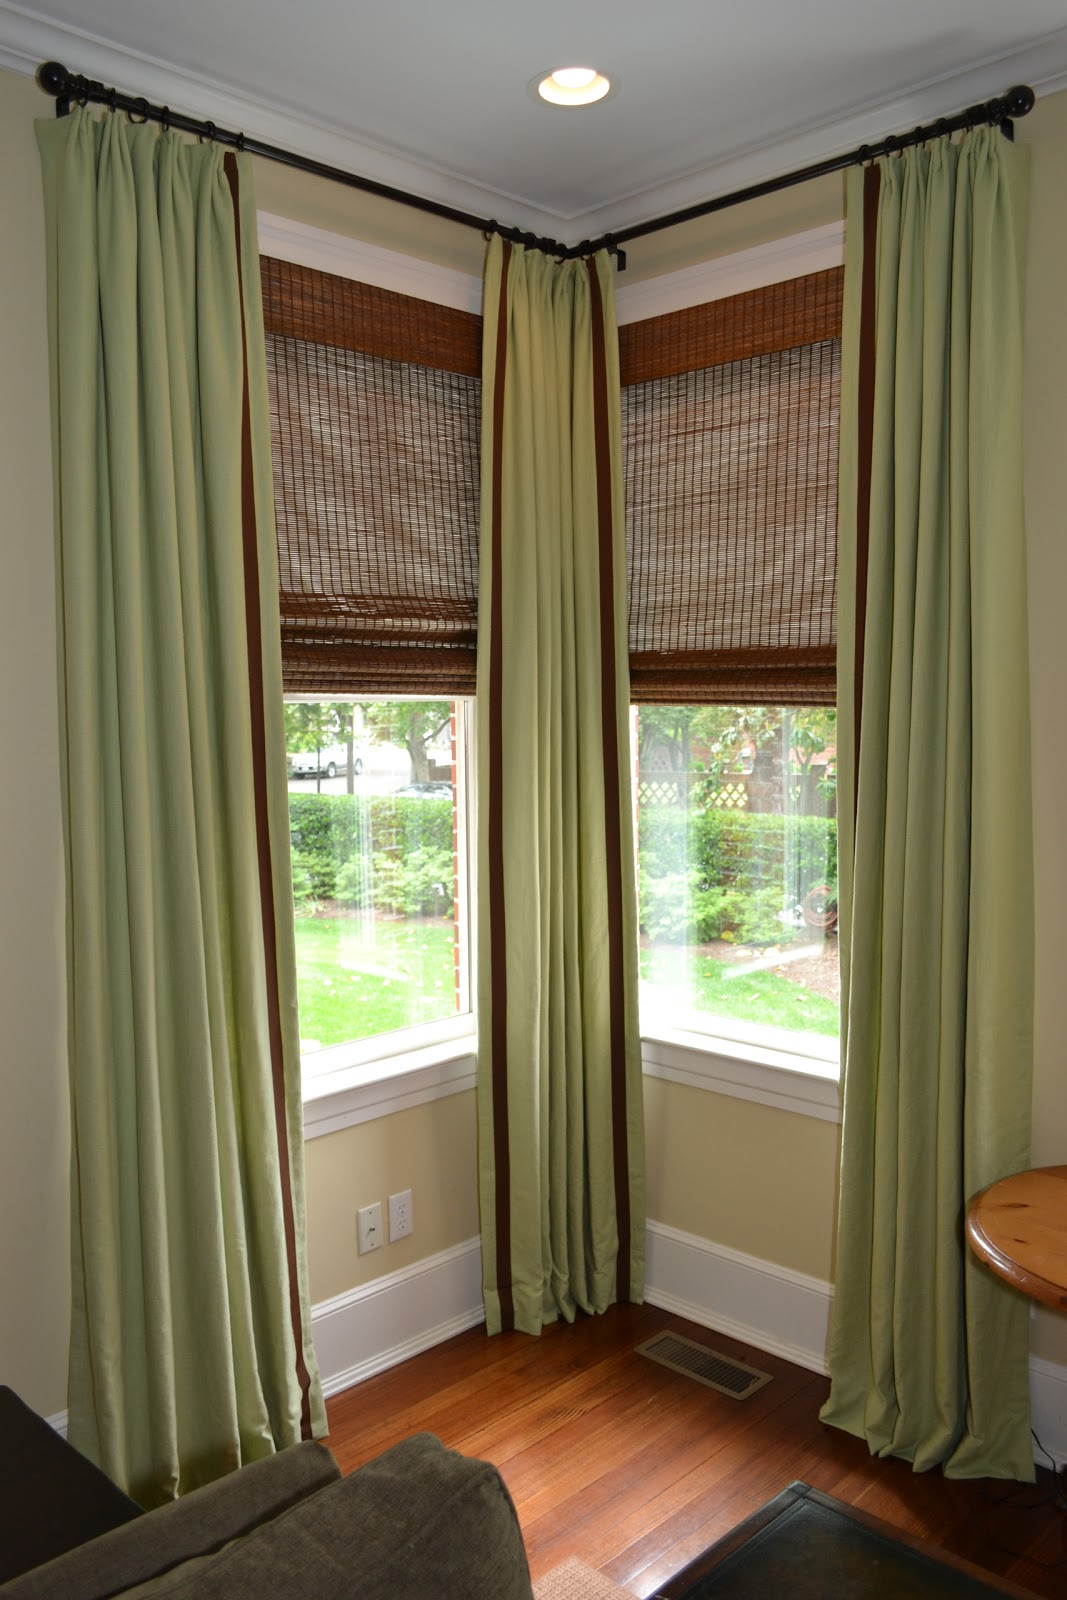 Williams interior design blog before and after window treatments